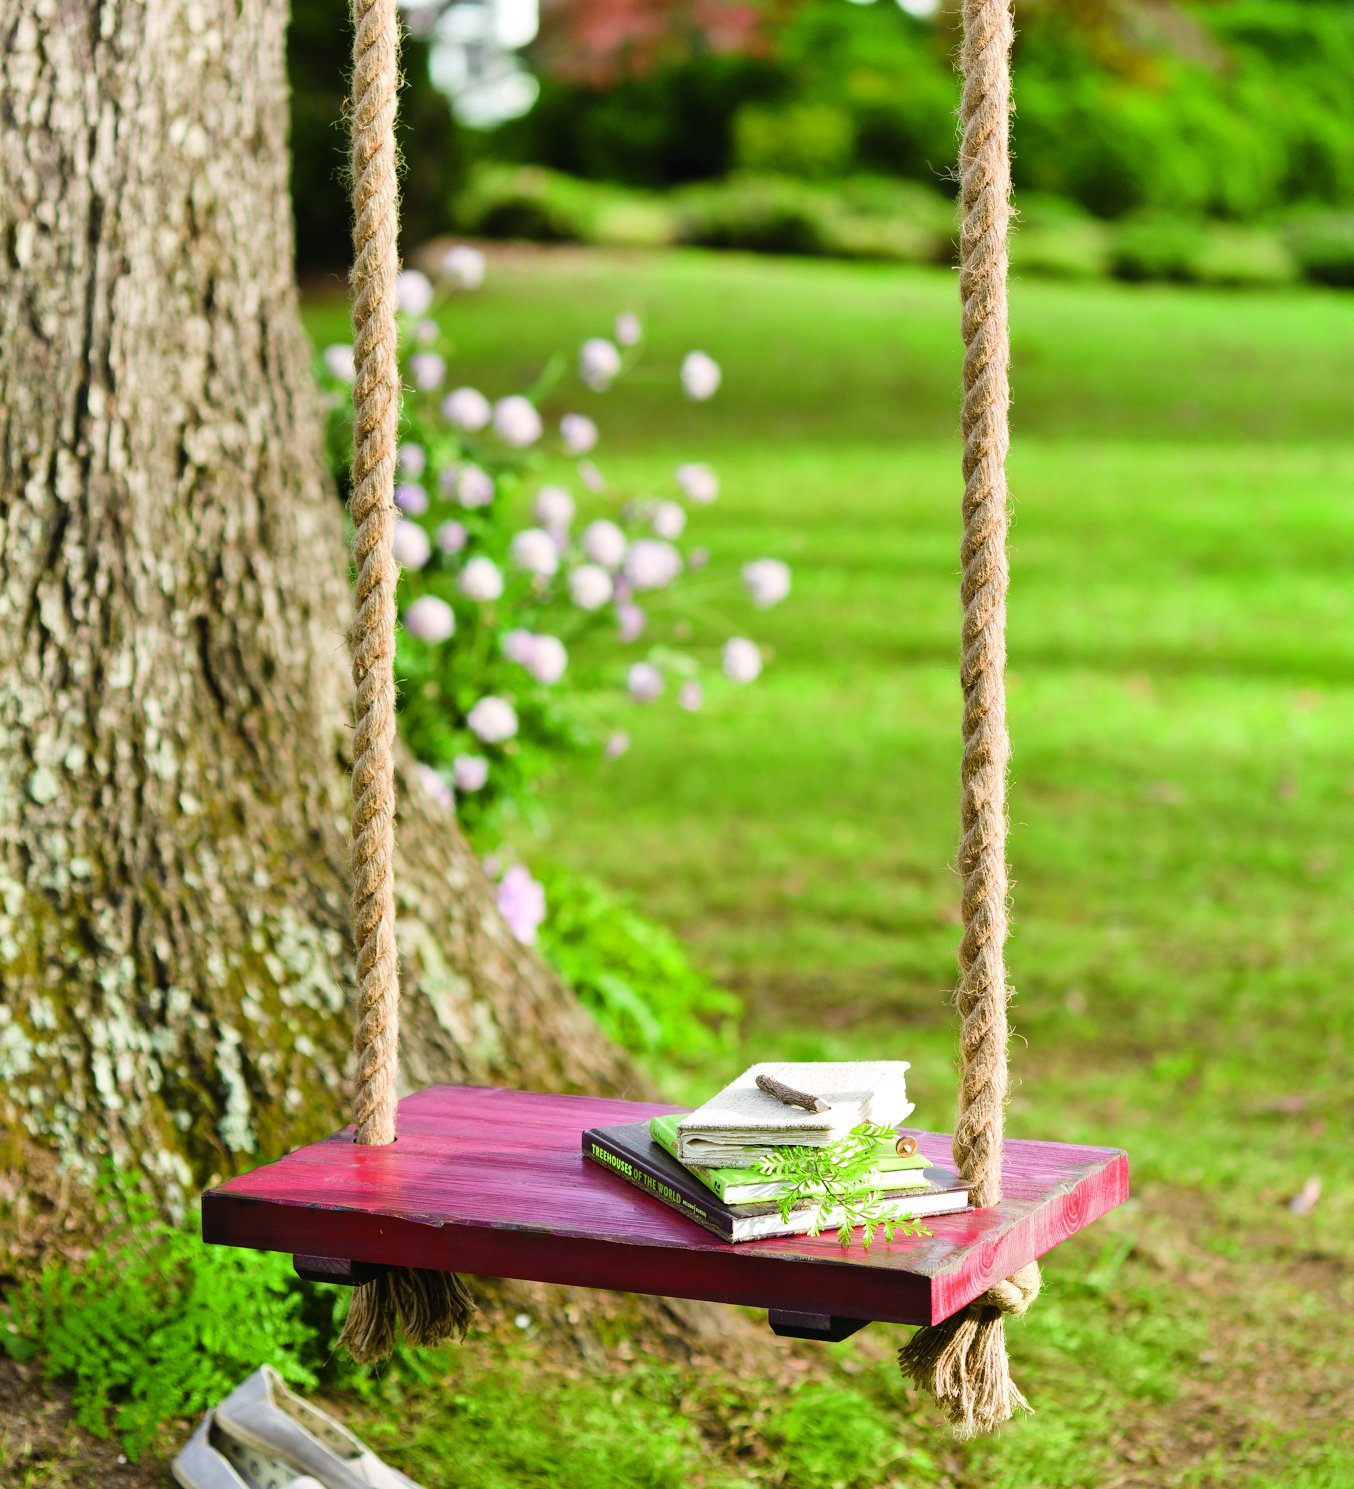 How to build a tree swing - How To Build A Tree Swing 56